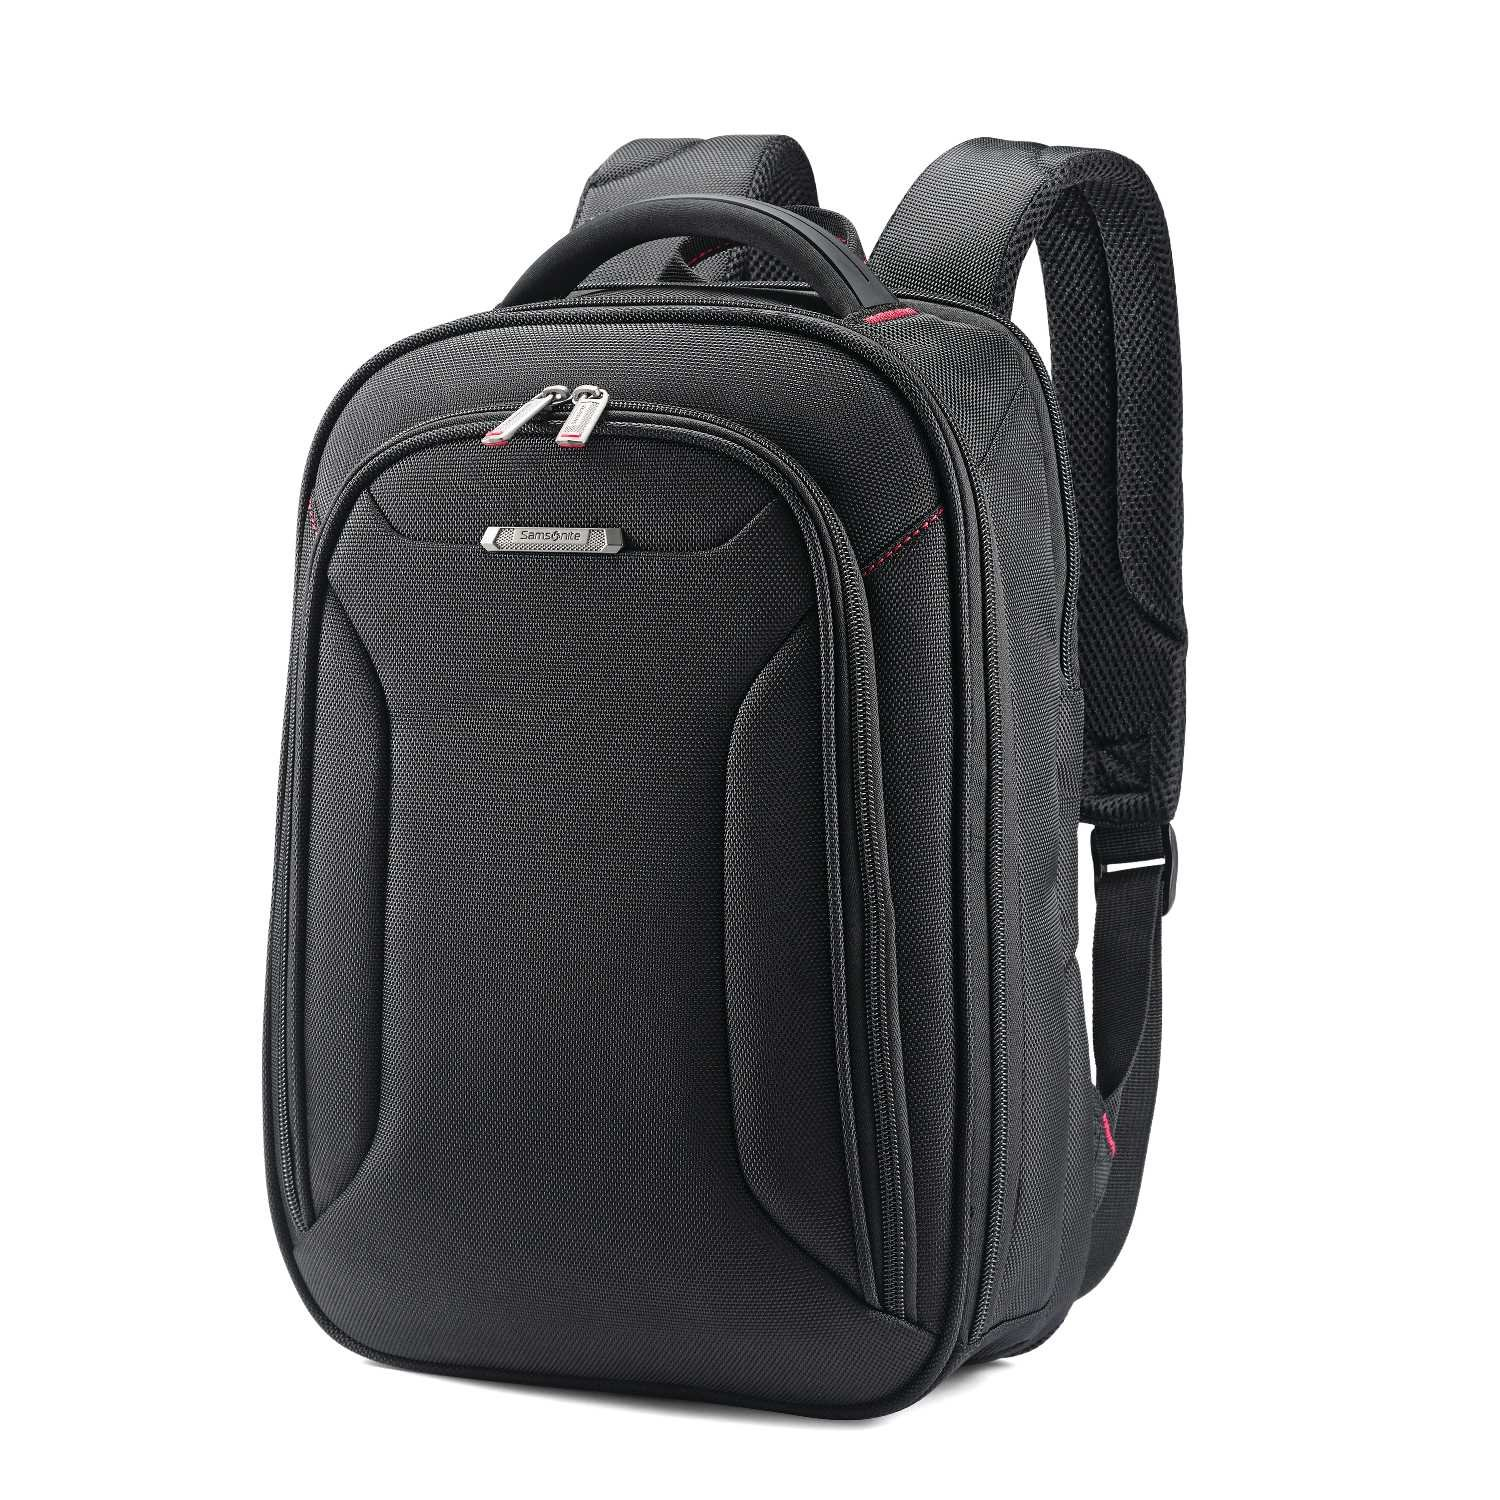 Samsonite Xenon 3.0 Business Backpack